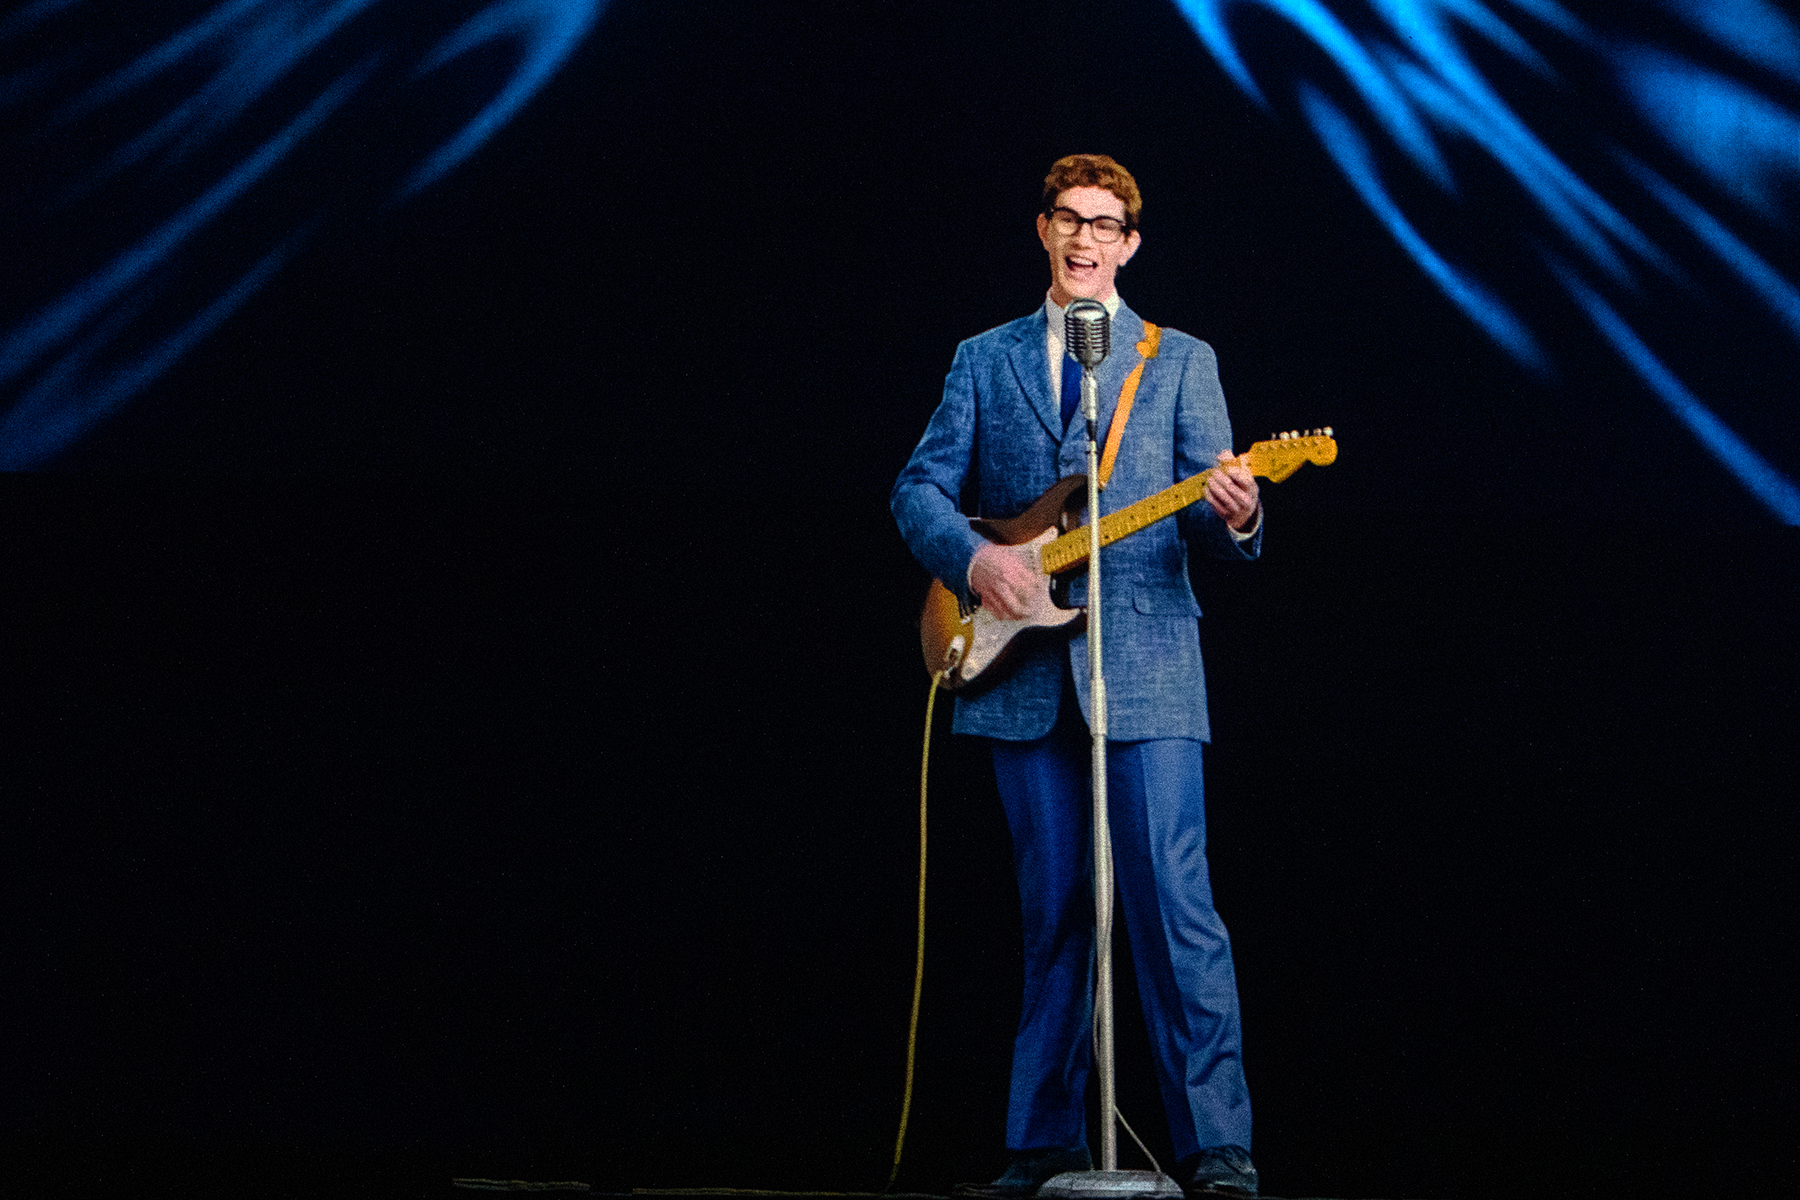 MADRID, SPAIN - FEBRUARY 12: A hologram of American singer Buddy Holly performing is projected on stage at Teatro La Estación on February 12, 2021 in Madrid, Spain. (Photo by Aldara Zarraoa/Redferns)